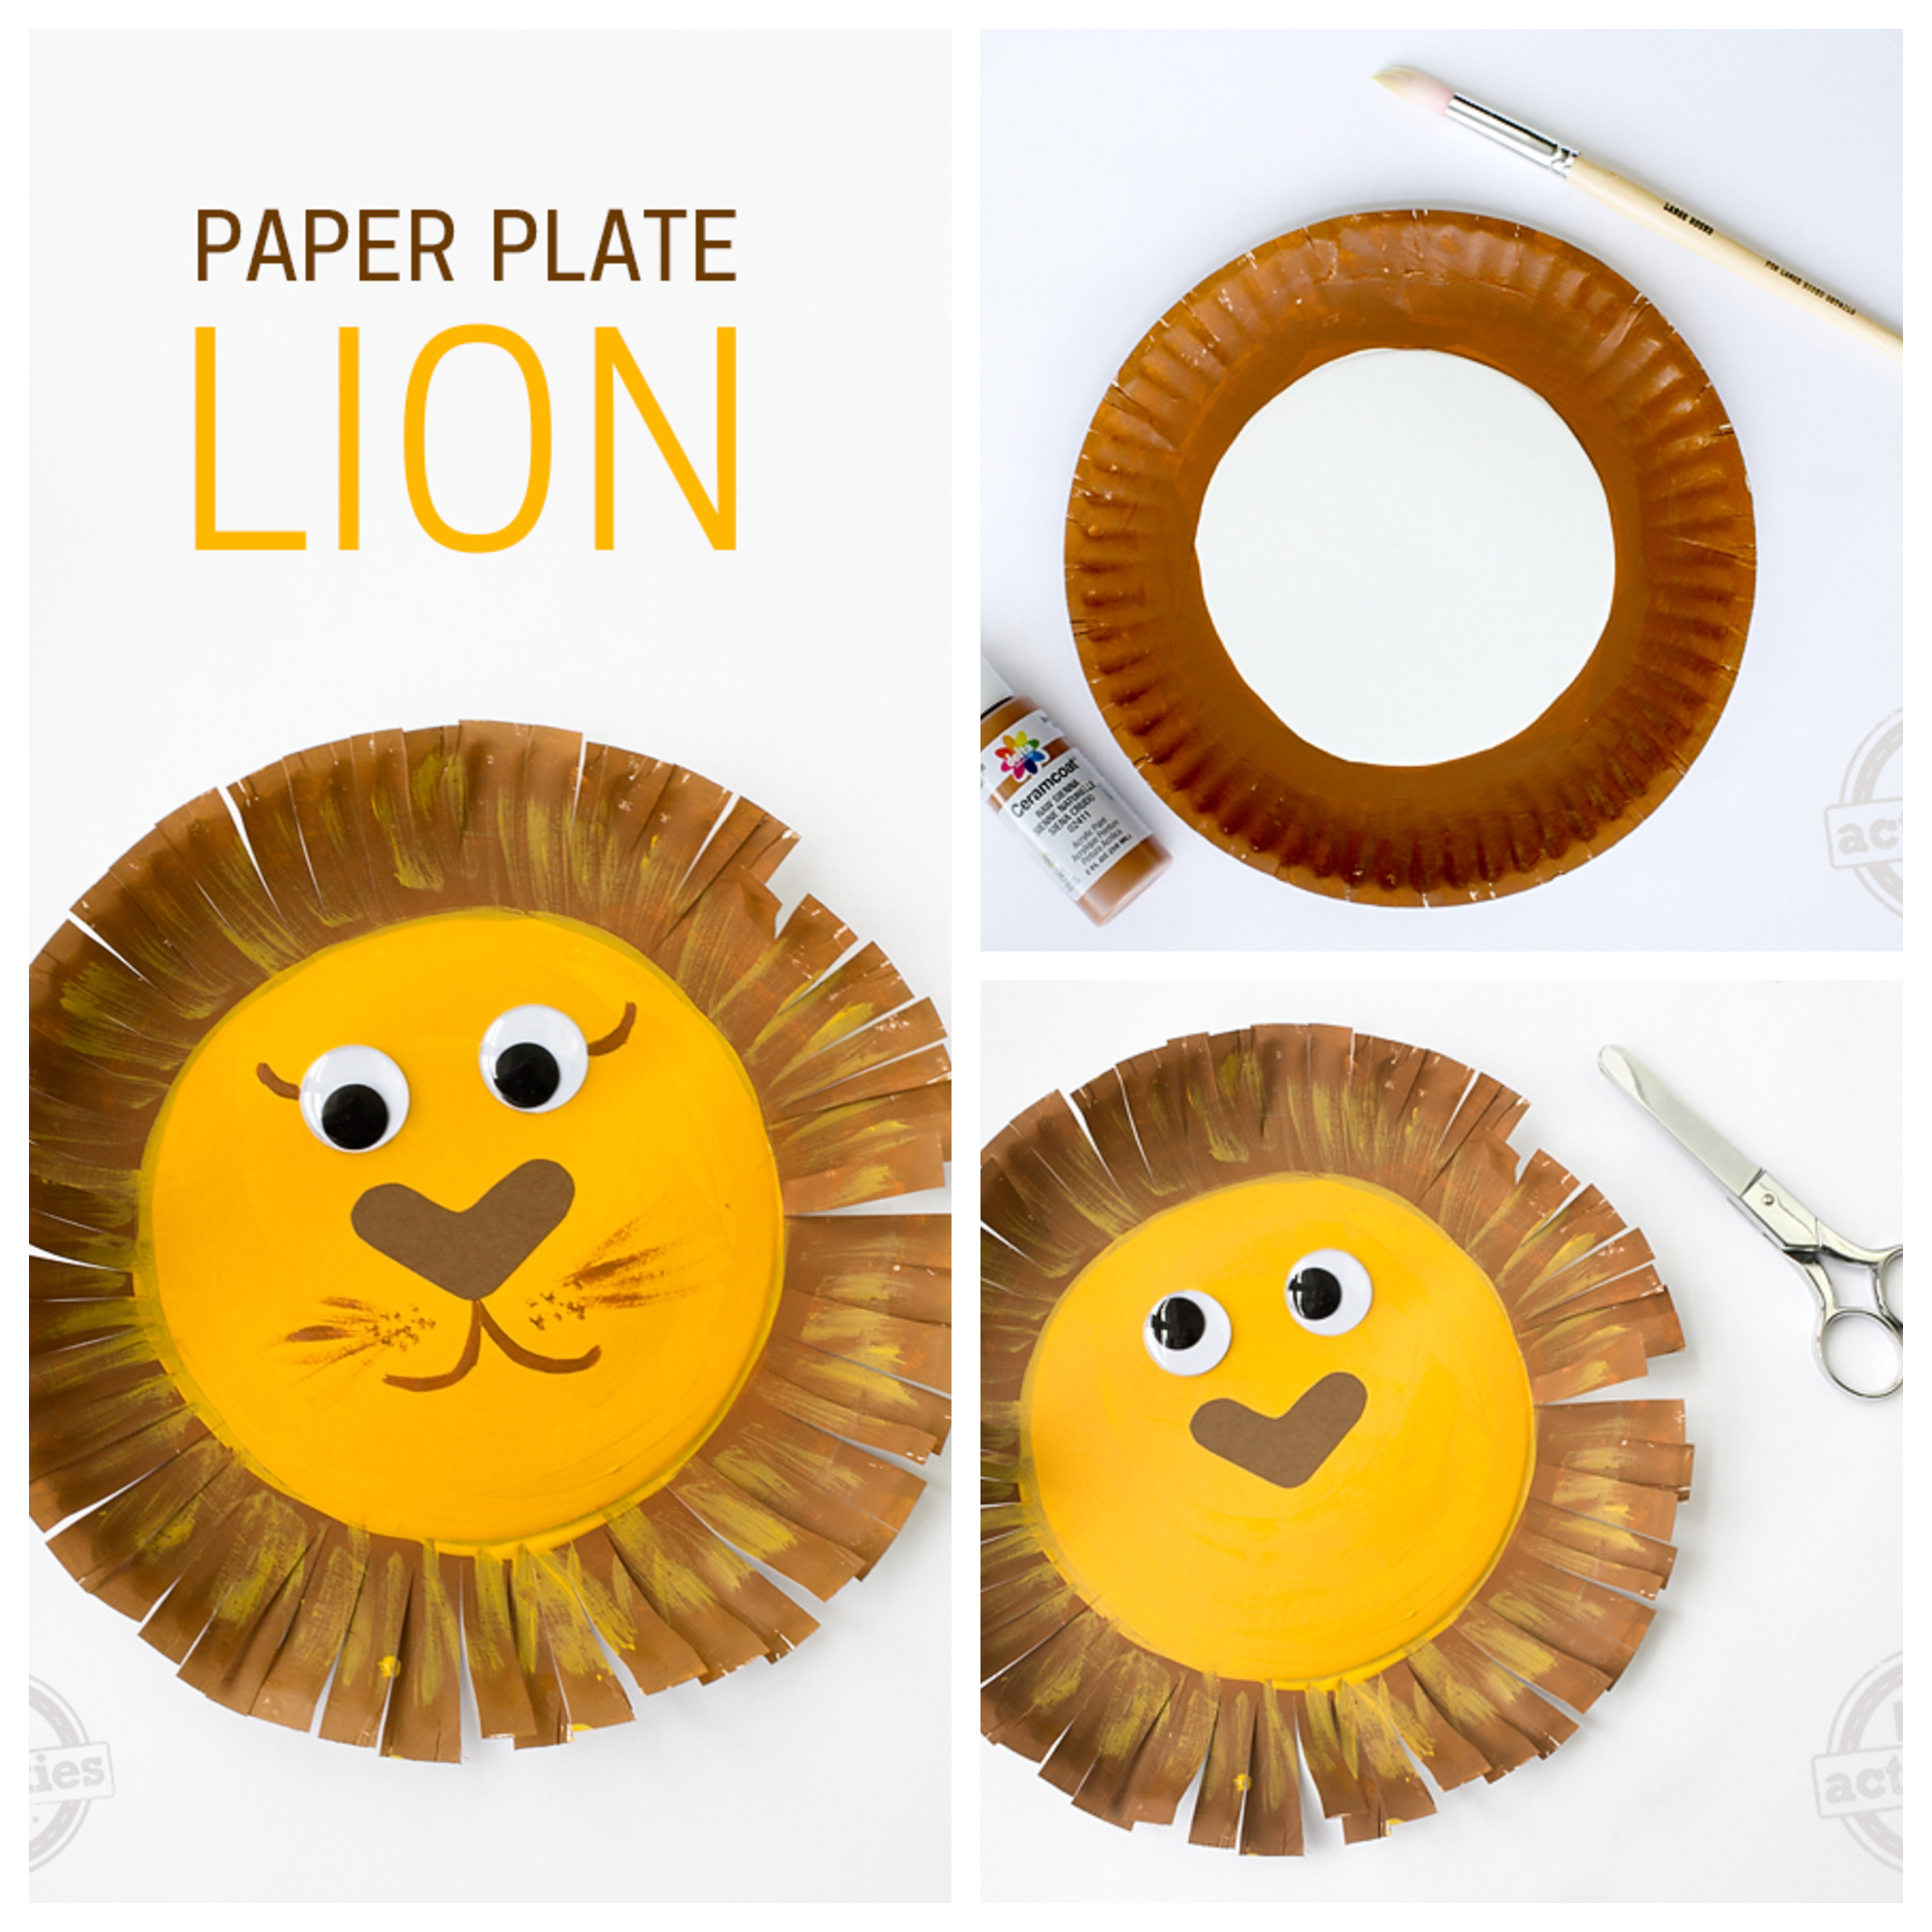 PAPER PLATE LION Kids Crafts Ideas That You Can Make Easily